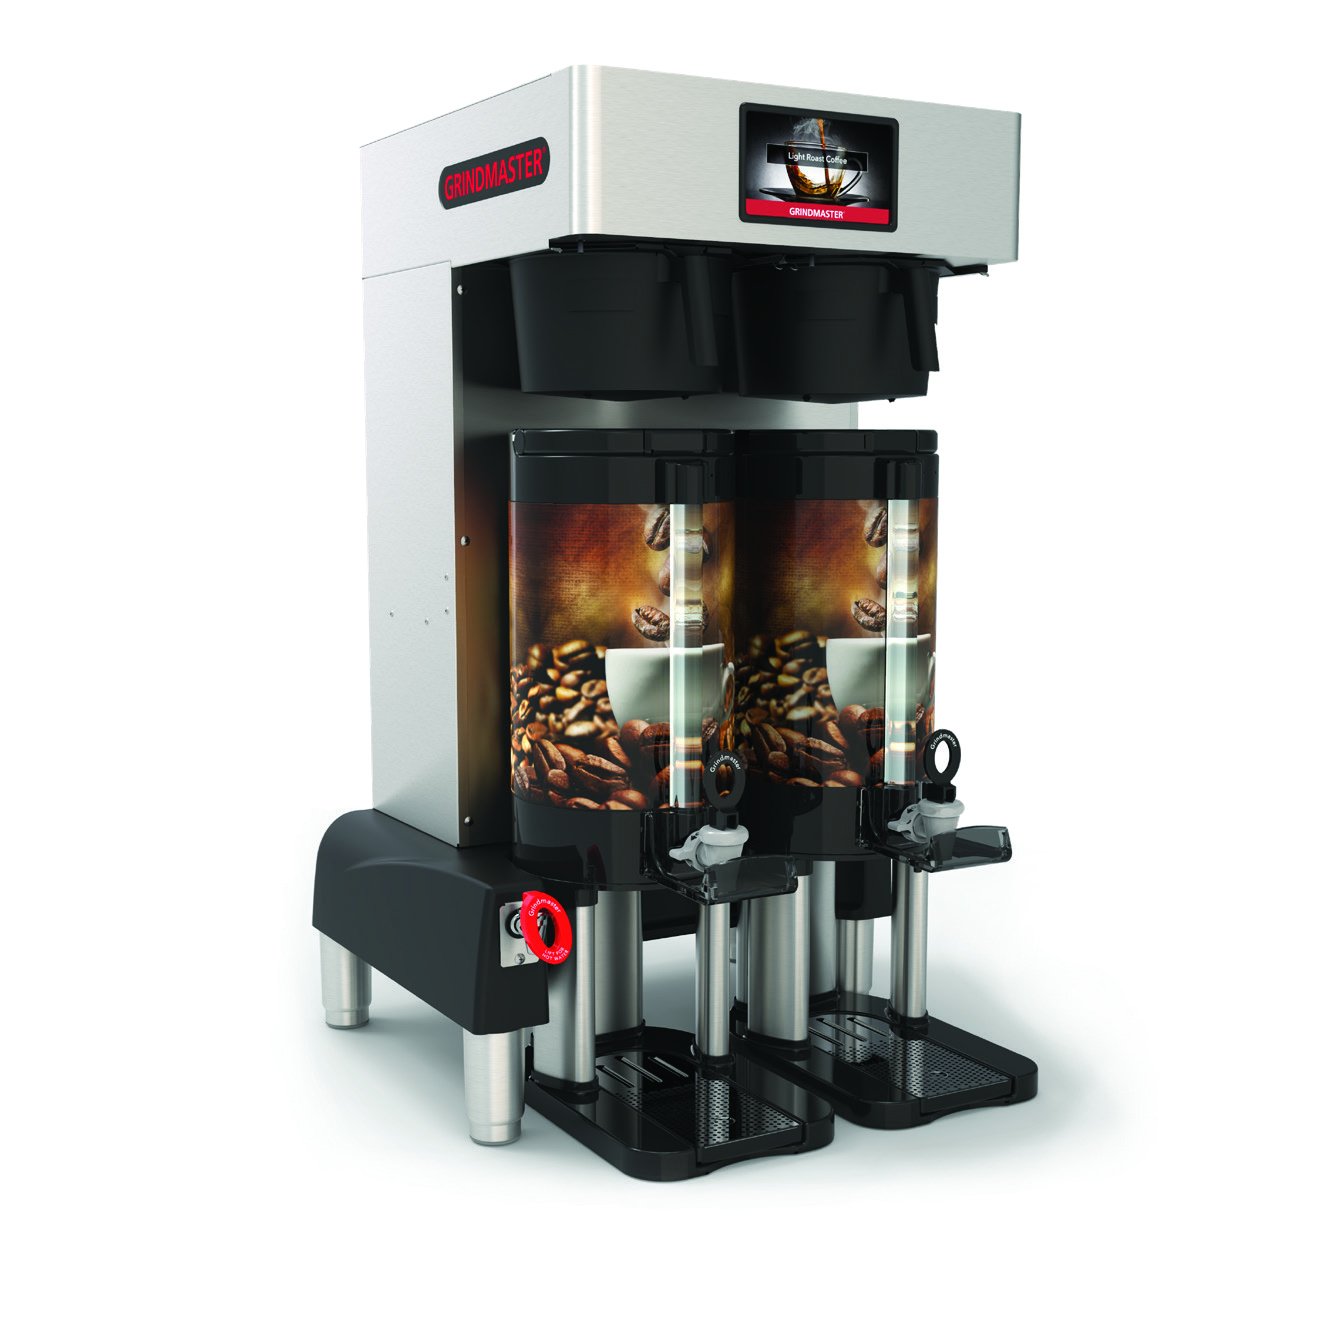 Grindmaster-Cecilware PBC-2VS coffee brewer for thermal server